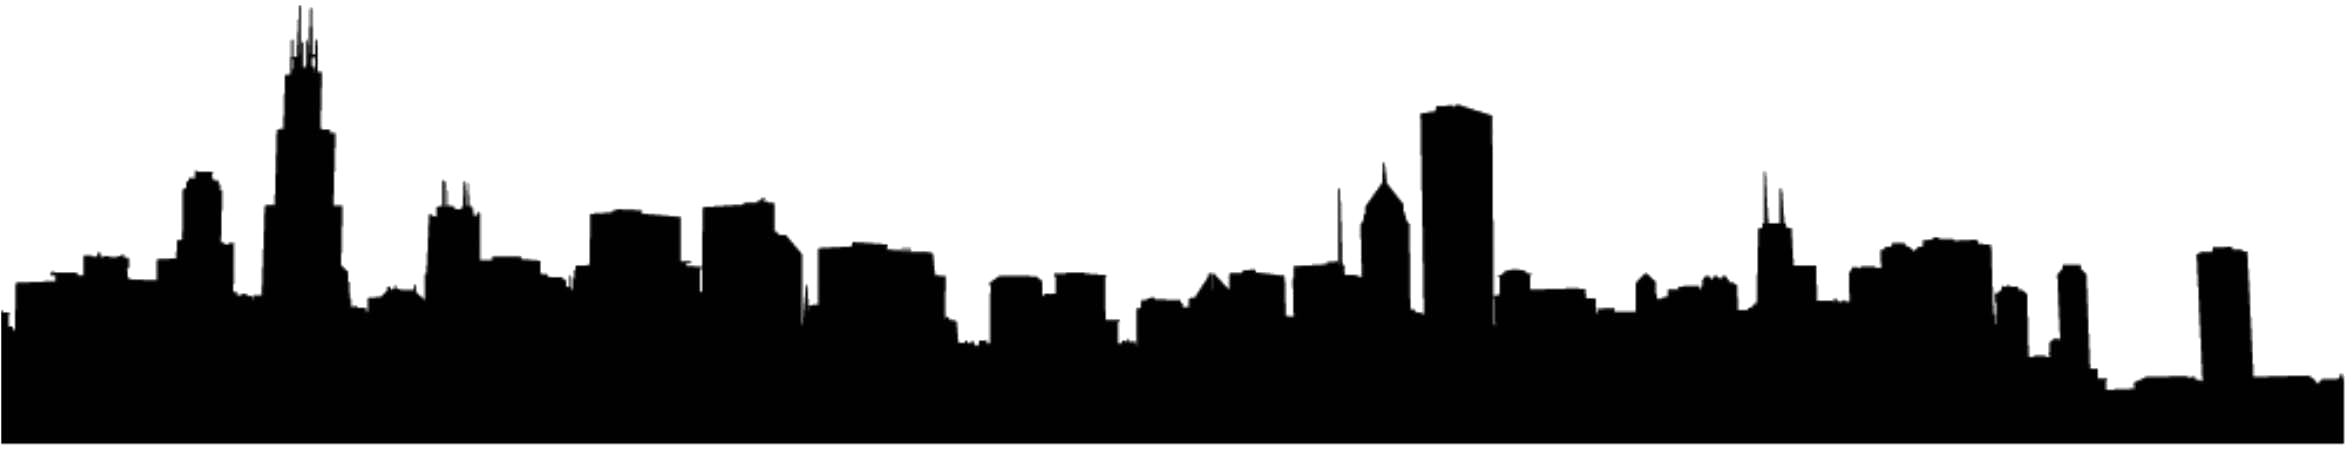 Kansas City Skyline Drawing | Free download on ClipArtMag